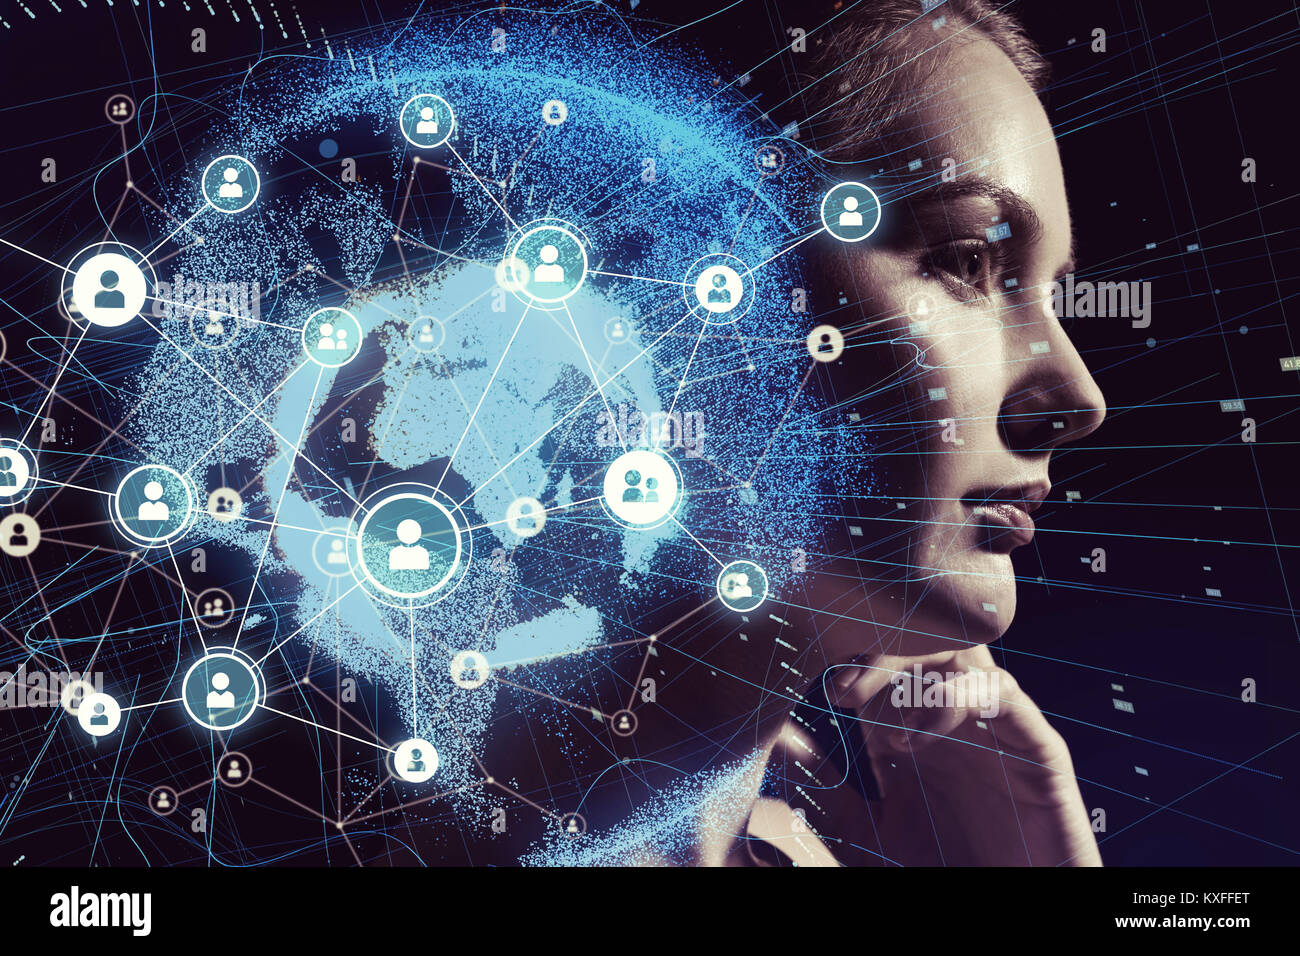 Global communication network and AI (Artificial Intelligence) concept. - Stock Image